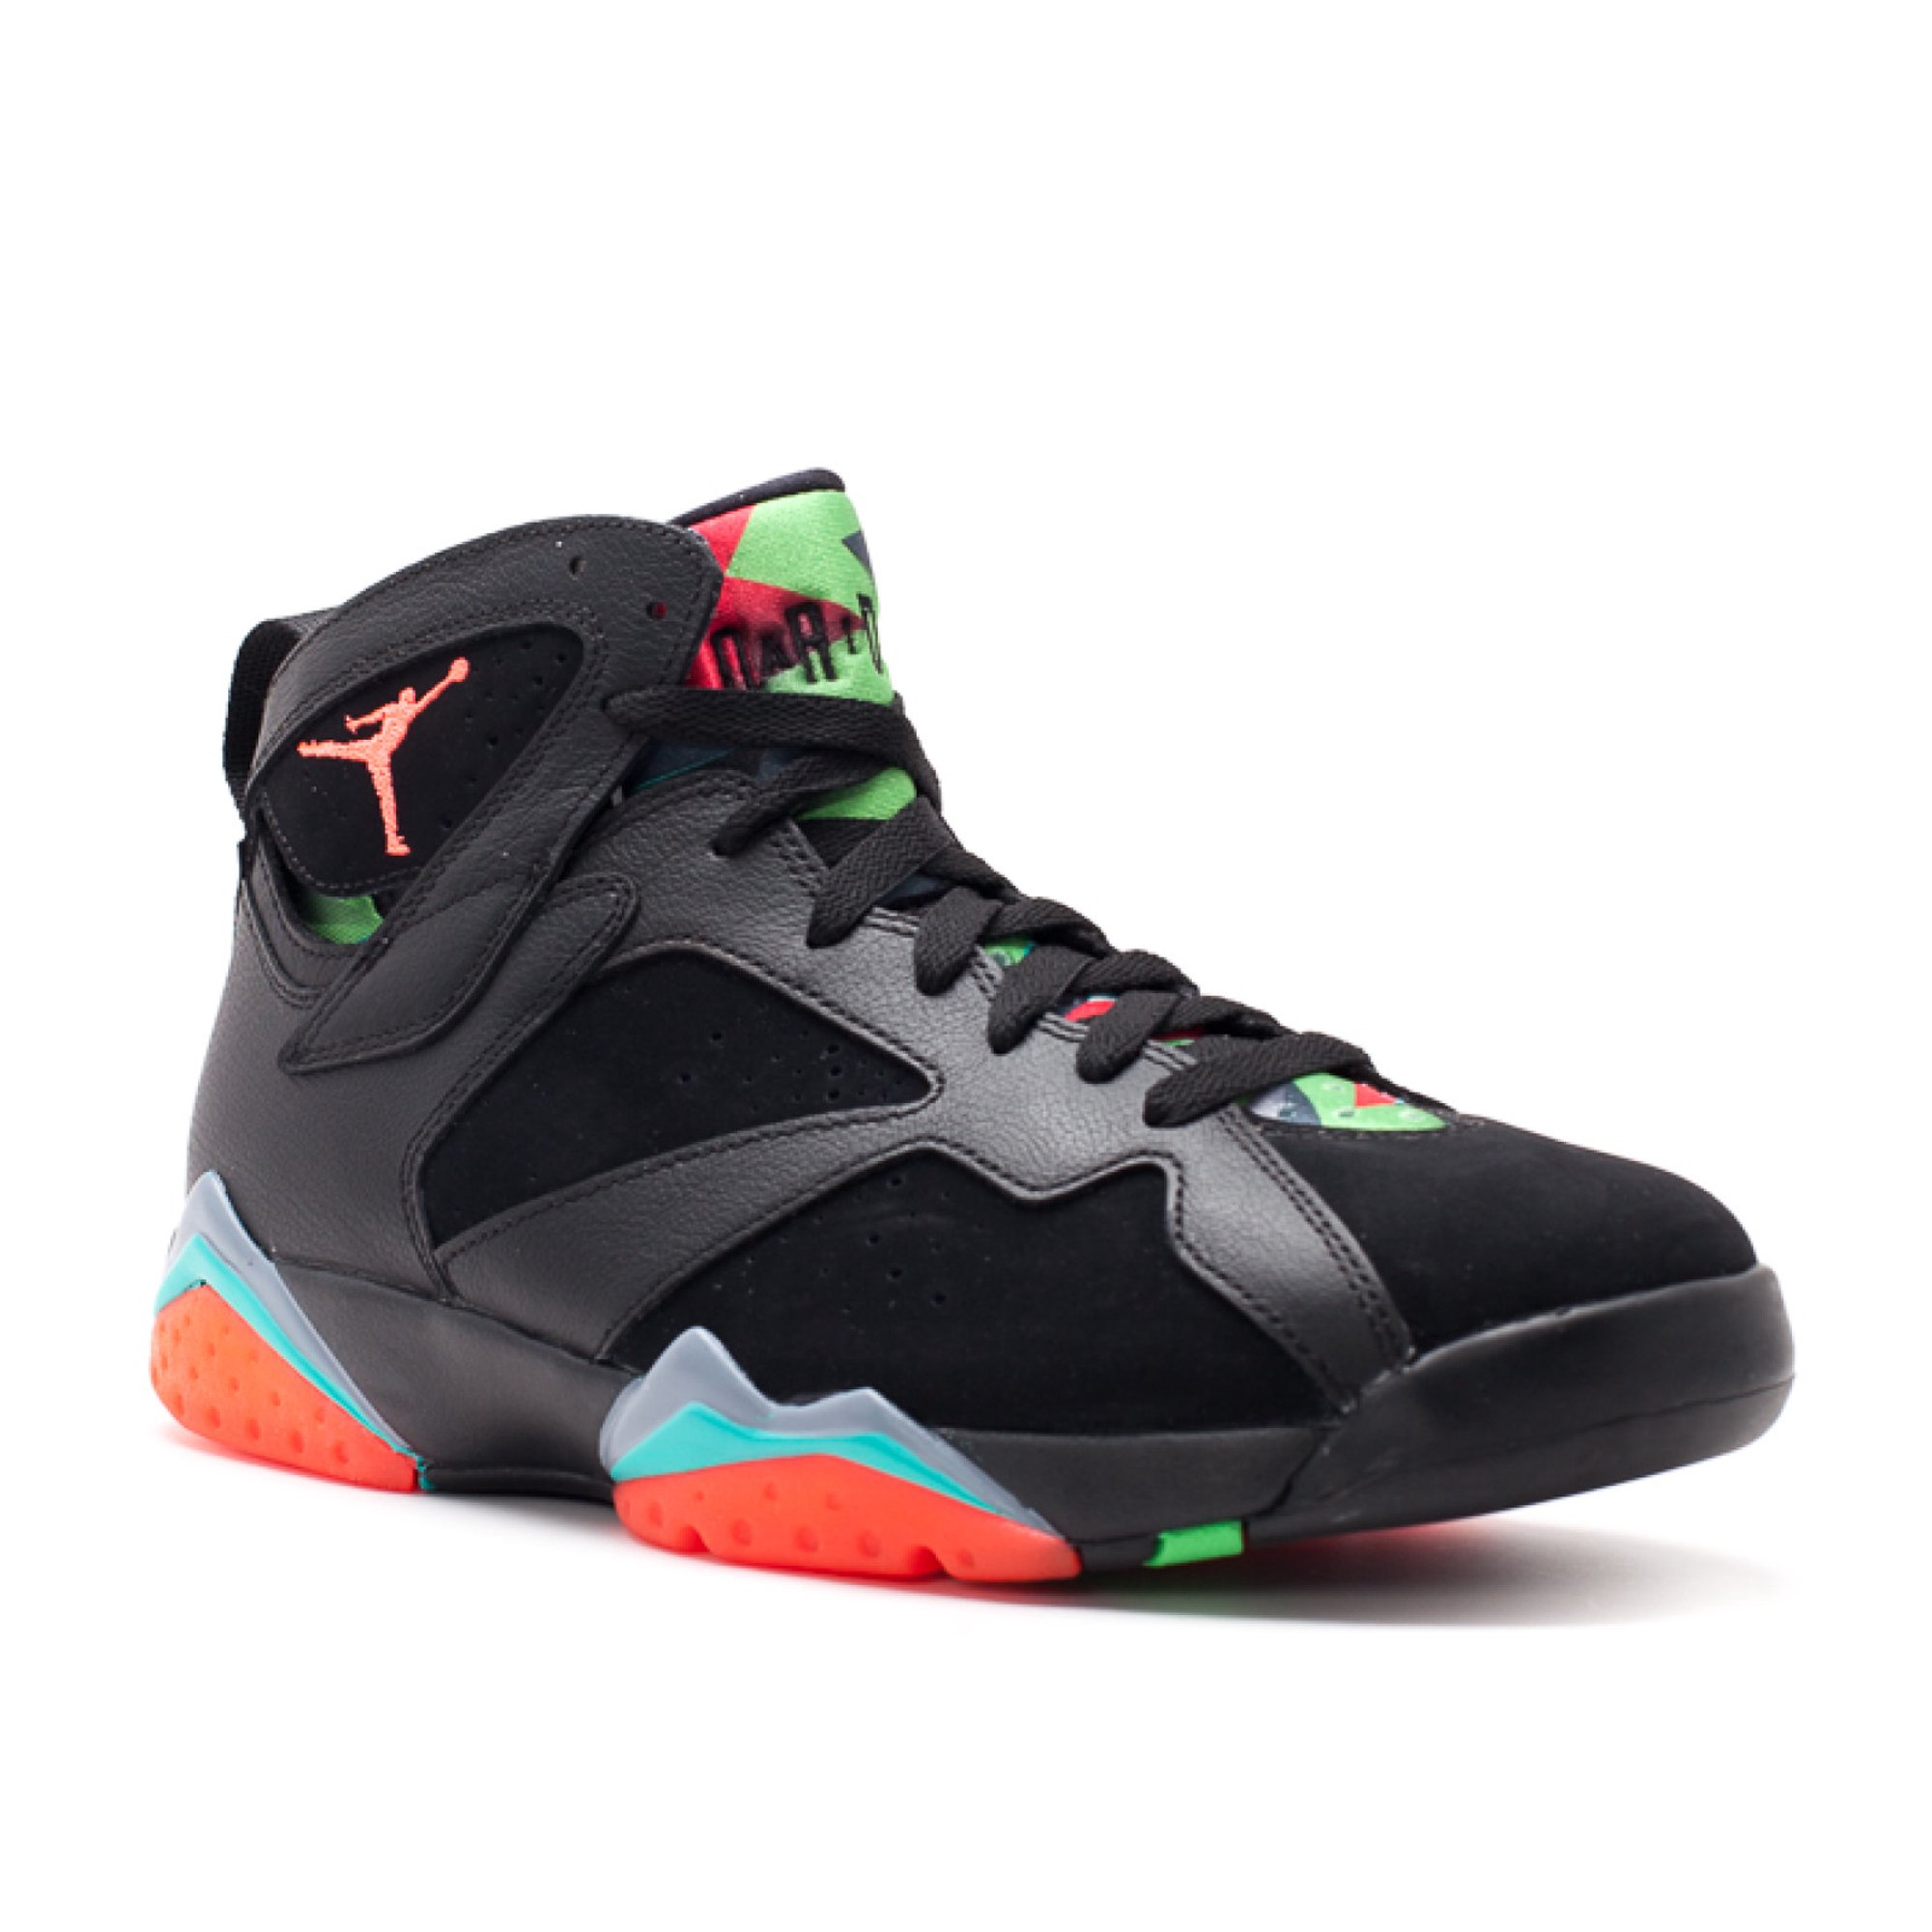 hot sales 0d20c 048d9 Air Jordan - Men - Air Jordan 7 Retro 30Th 'Barcelona Nights' - 705350-007  - Size 12